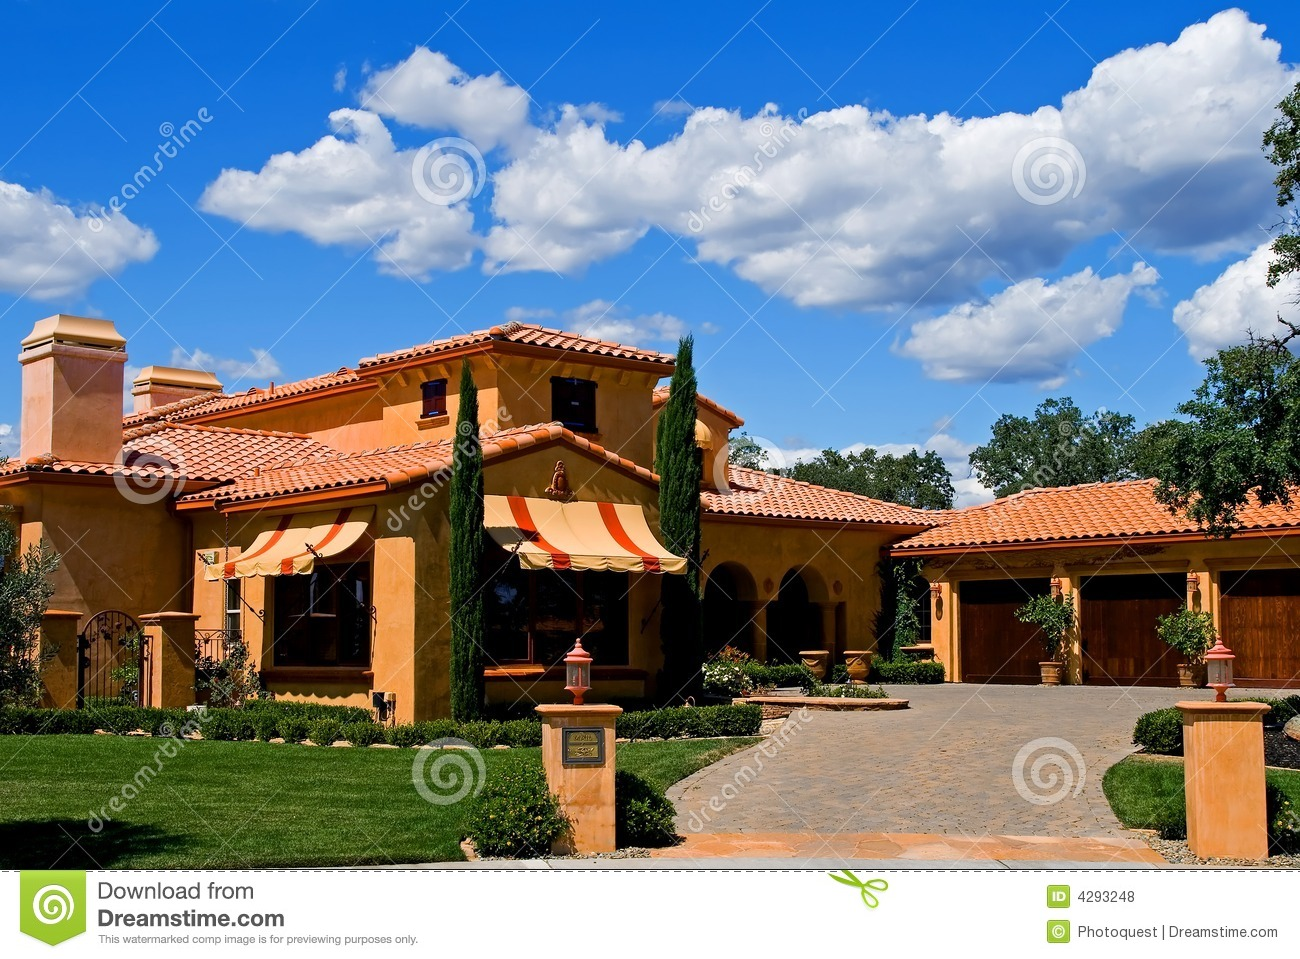 Italian style house royalty free stock photos image 4293248 Italian style house